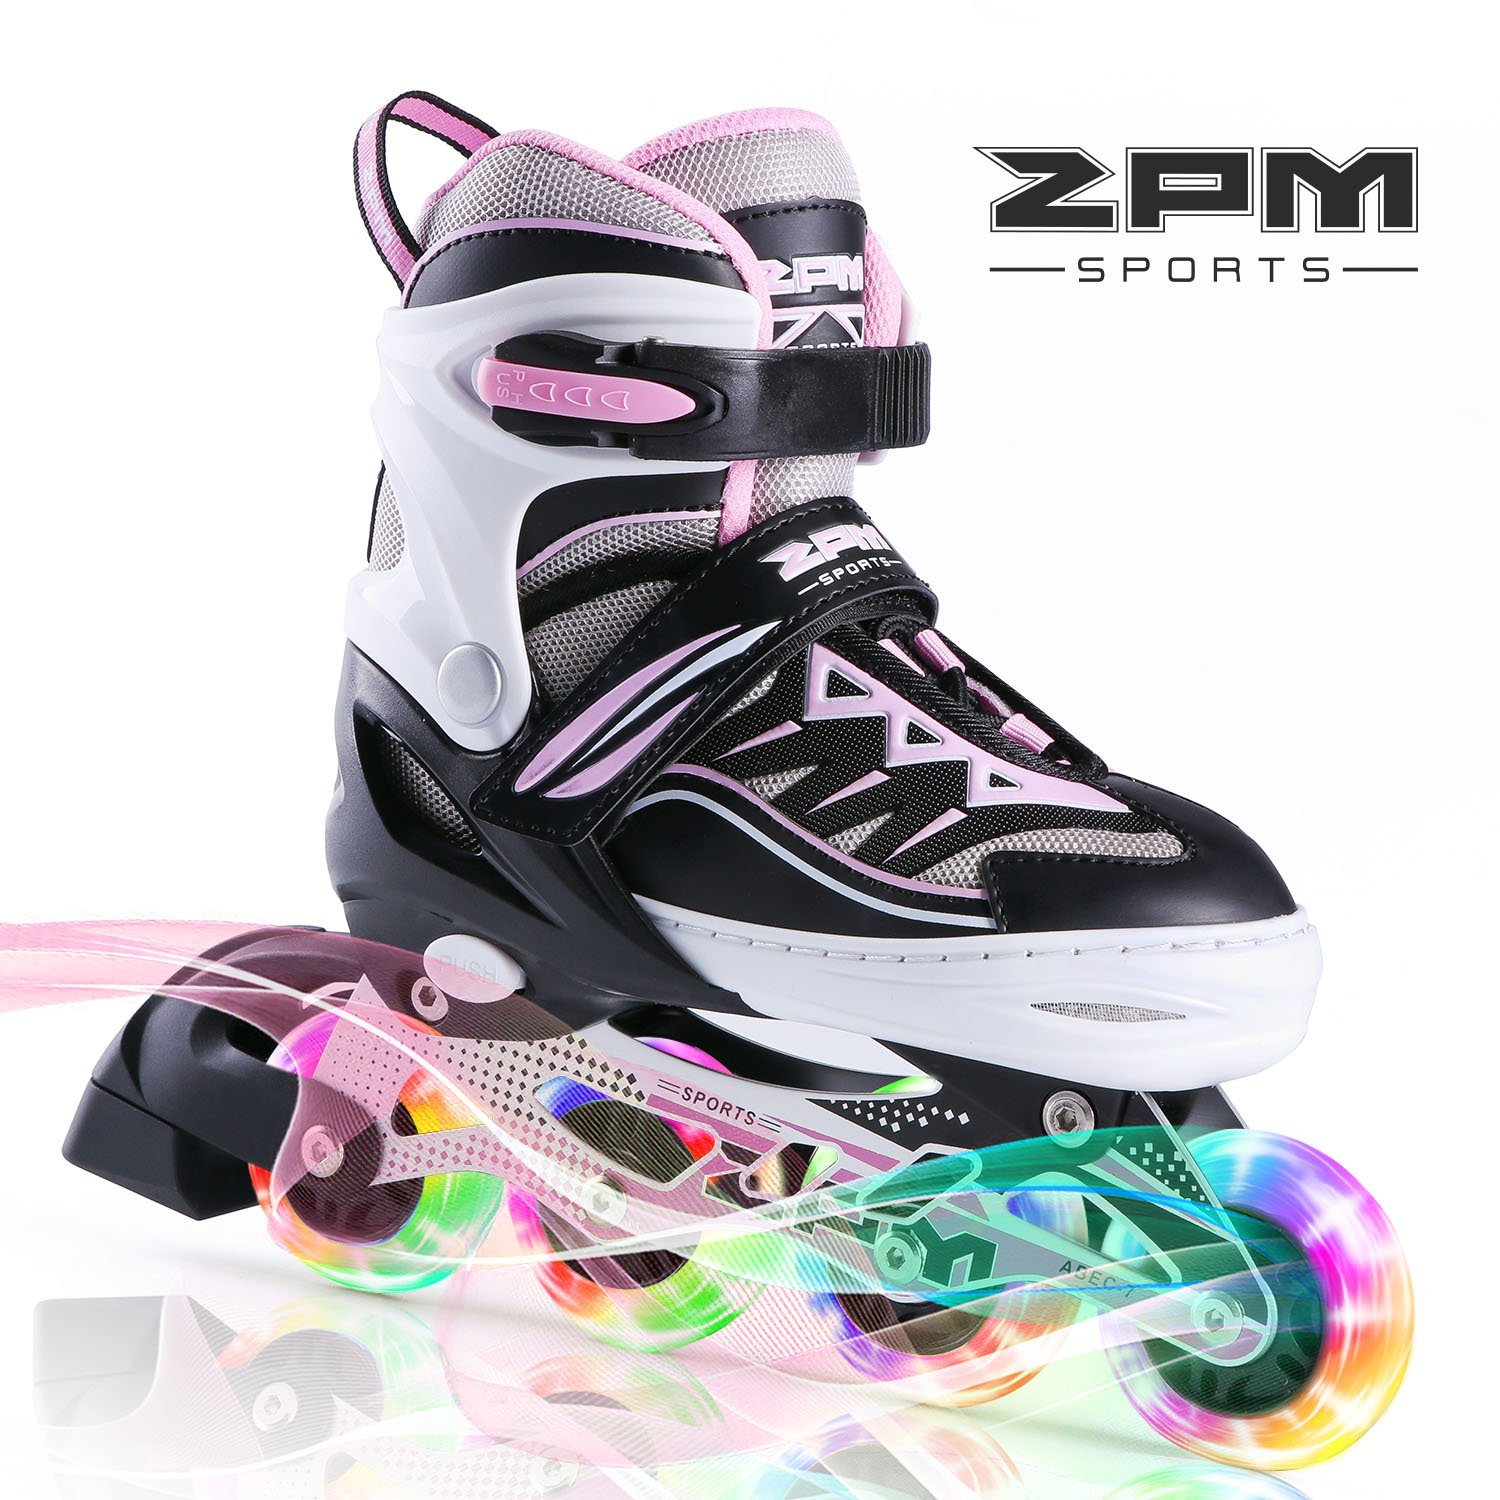 2PM SPORTS Cytia Pink Girls Adjustable Illuminating Inline Skates with Light up Wheels Fun Flashing Rollerblades for Kids